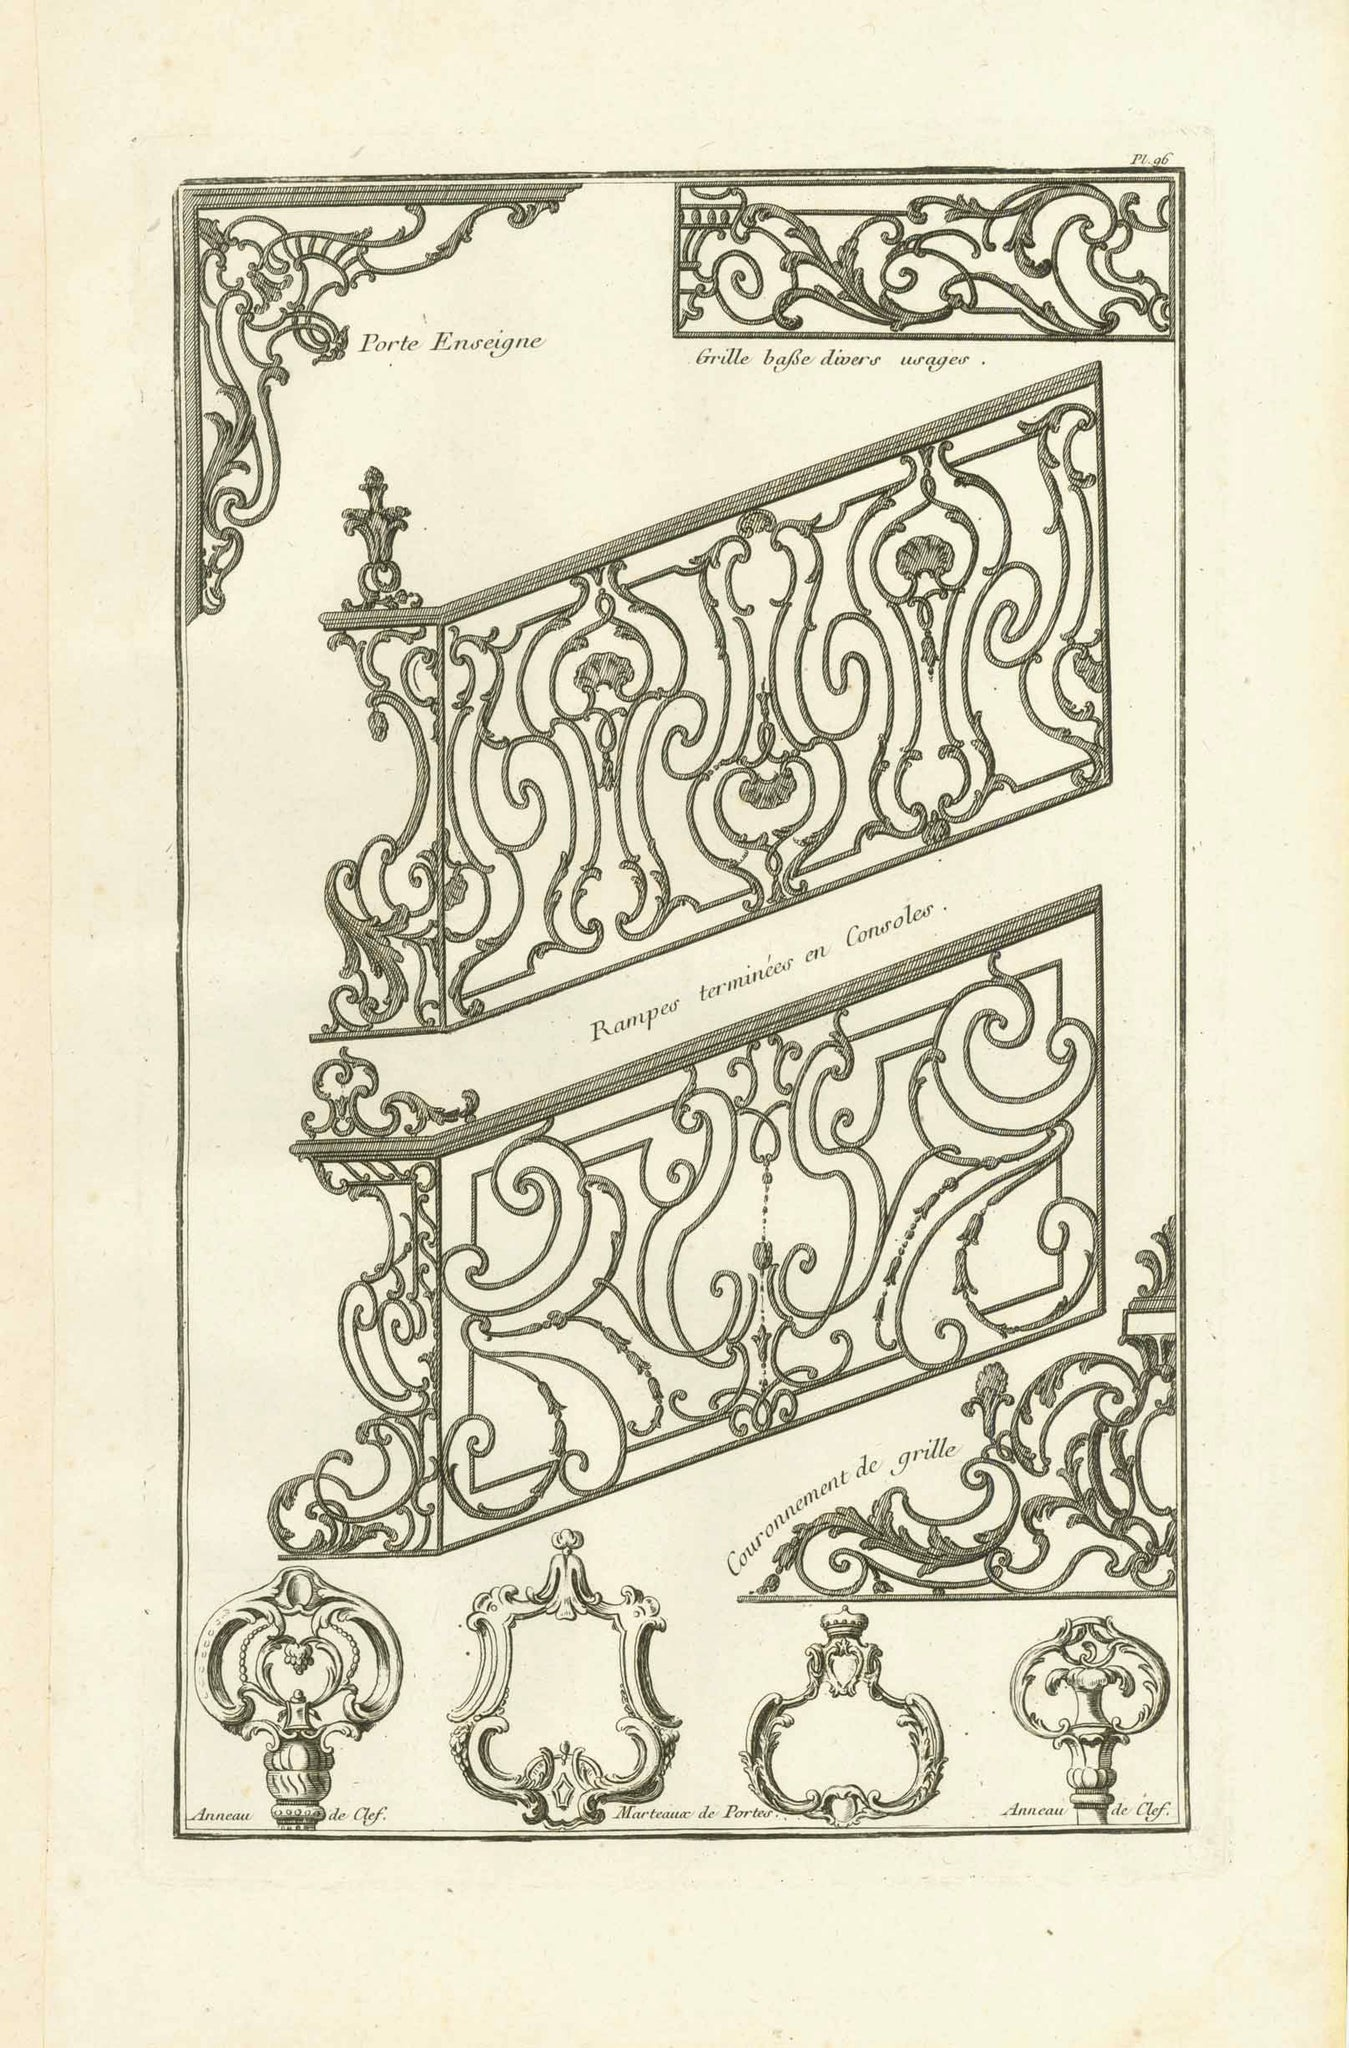 "No title. Wrought Iron Stairway railings and other samples of wrought iron  Copper etching  Published in ""Traite elementary pratique d'architecture ou étude des cinq ordres""  - Regula delle cinque ordini d'architettura  By Barozzi da Vignola (1507-1573)  Original Italian edition was printed in 1562. Our prints are from the French edition. Paris, 1767  Page 94 from this work.  Original antique print"